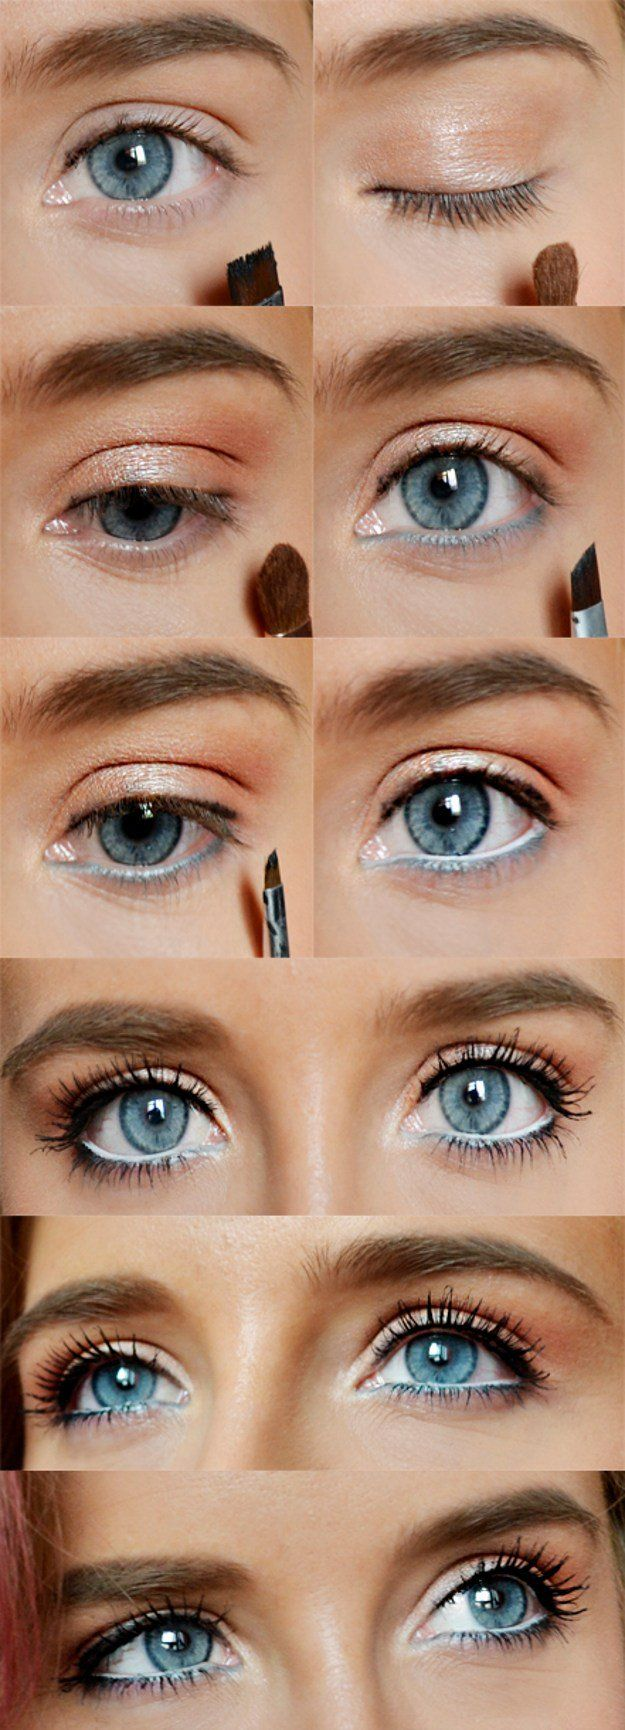 How to Do Natural Spring Makeup   Easy DIY Look